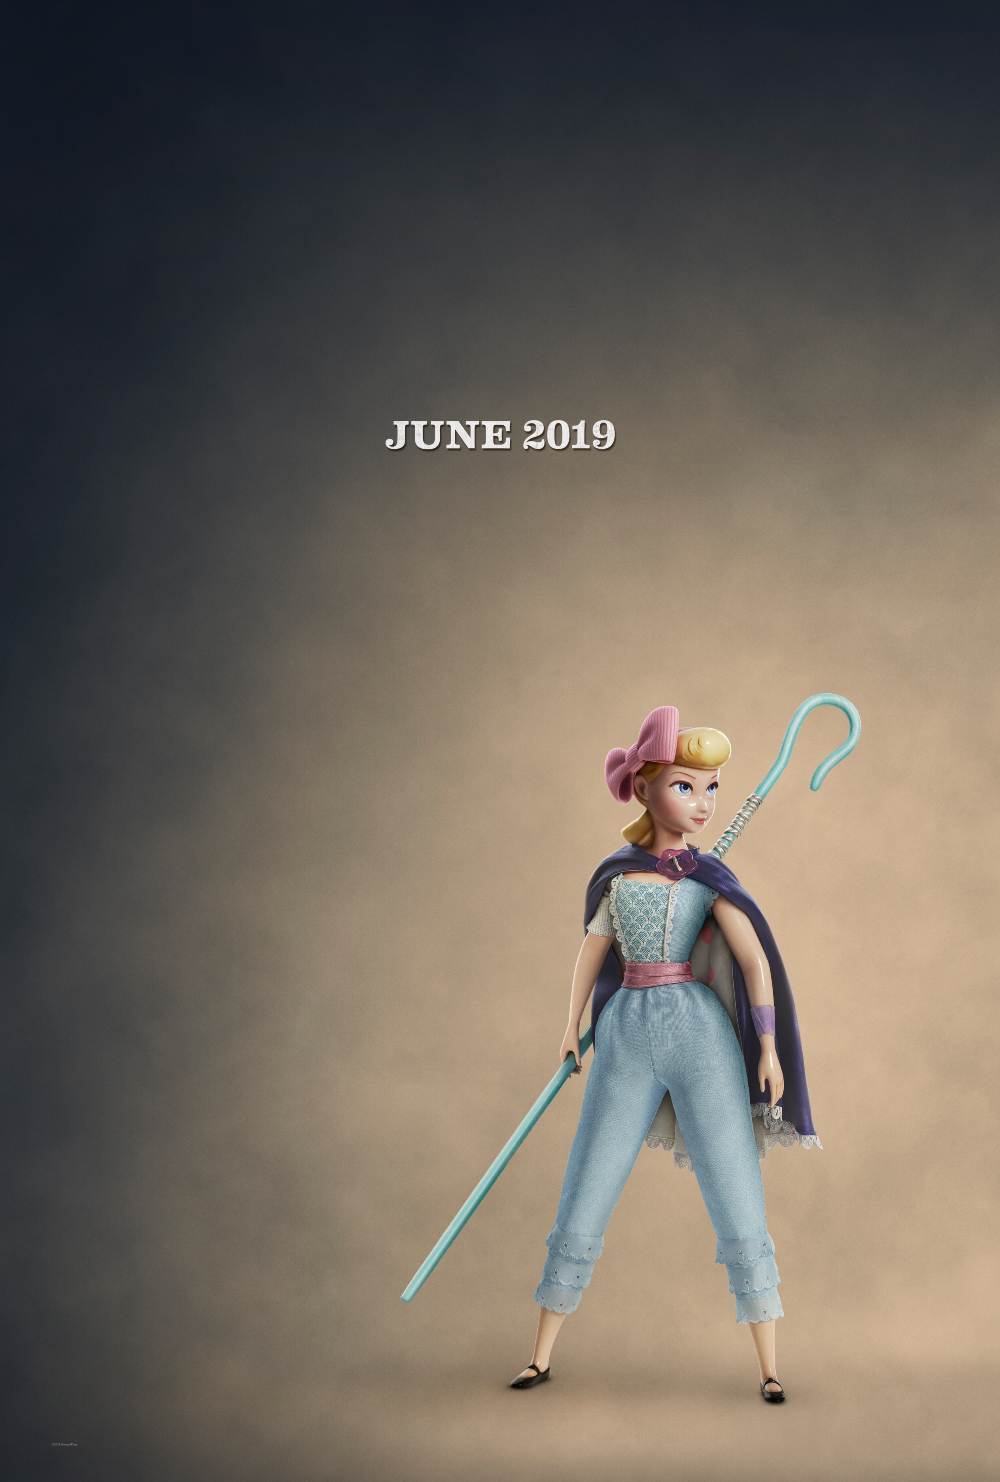 toy story 4 poster bo peep - Sinopsis Oficial de Toy Story 4